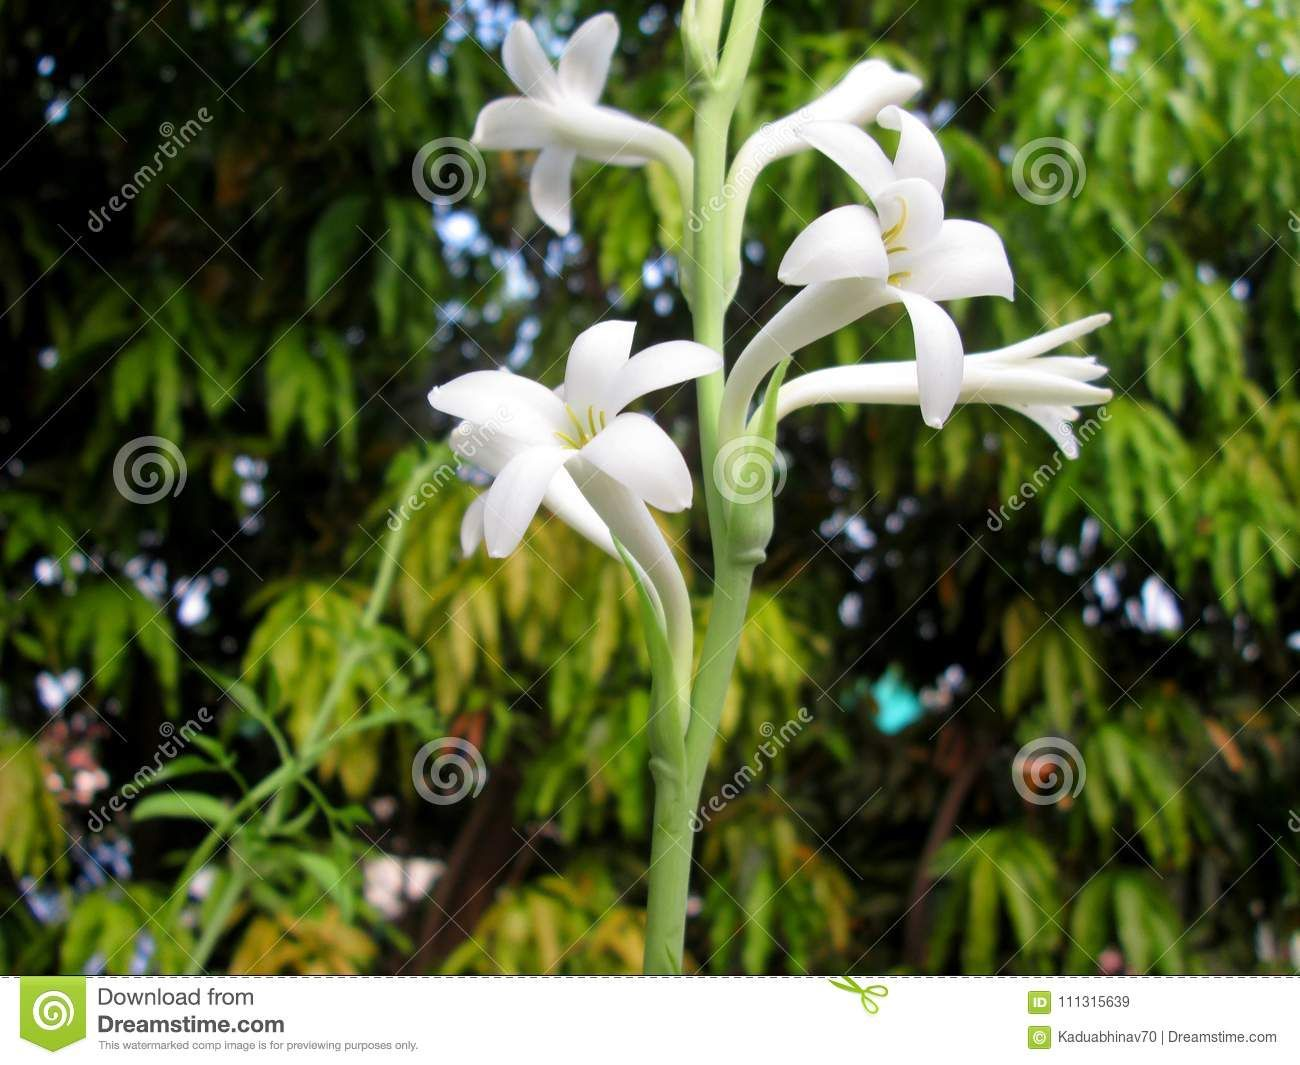 Photo About Beautiful White Polianthes Flower Bloomed Up In The Summer Season Image Of Beautiful Polianthes Bloomed 1113156 Tropical Flowers Flowers Bloom